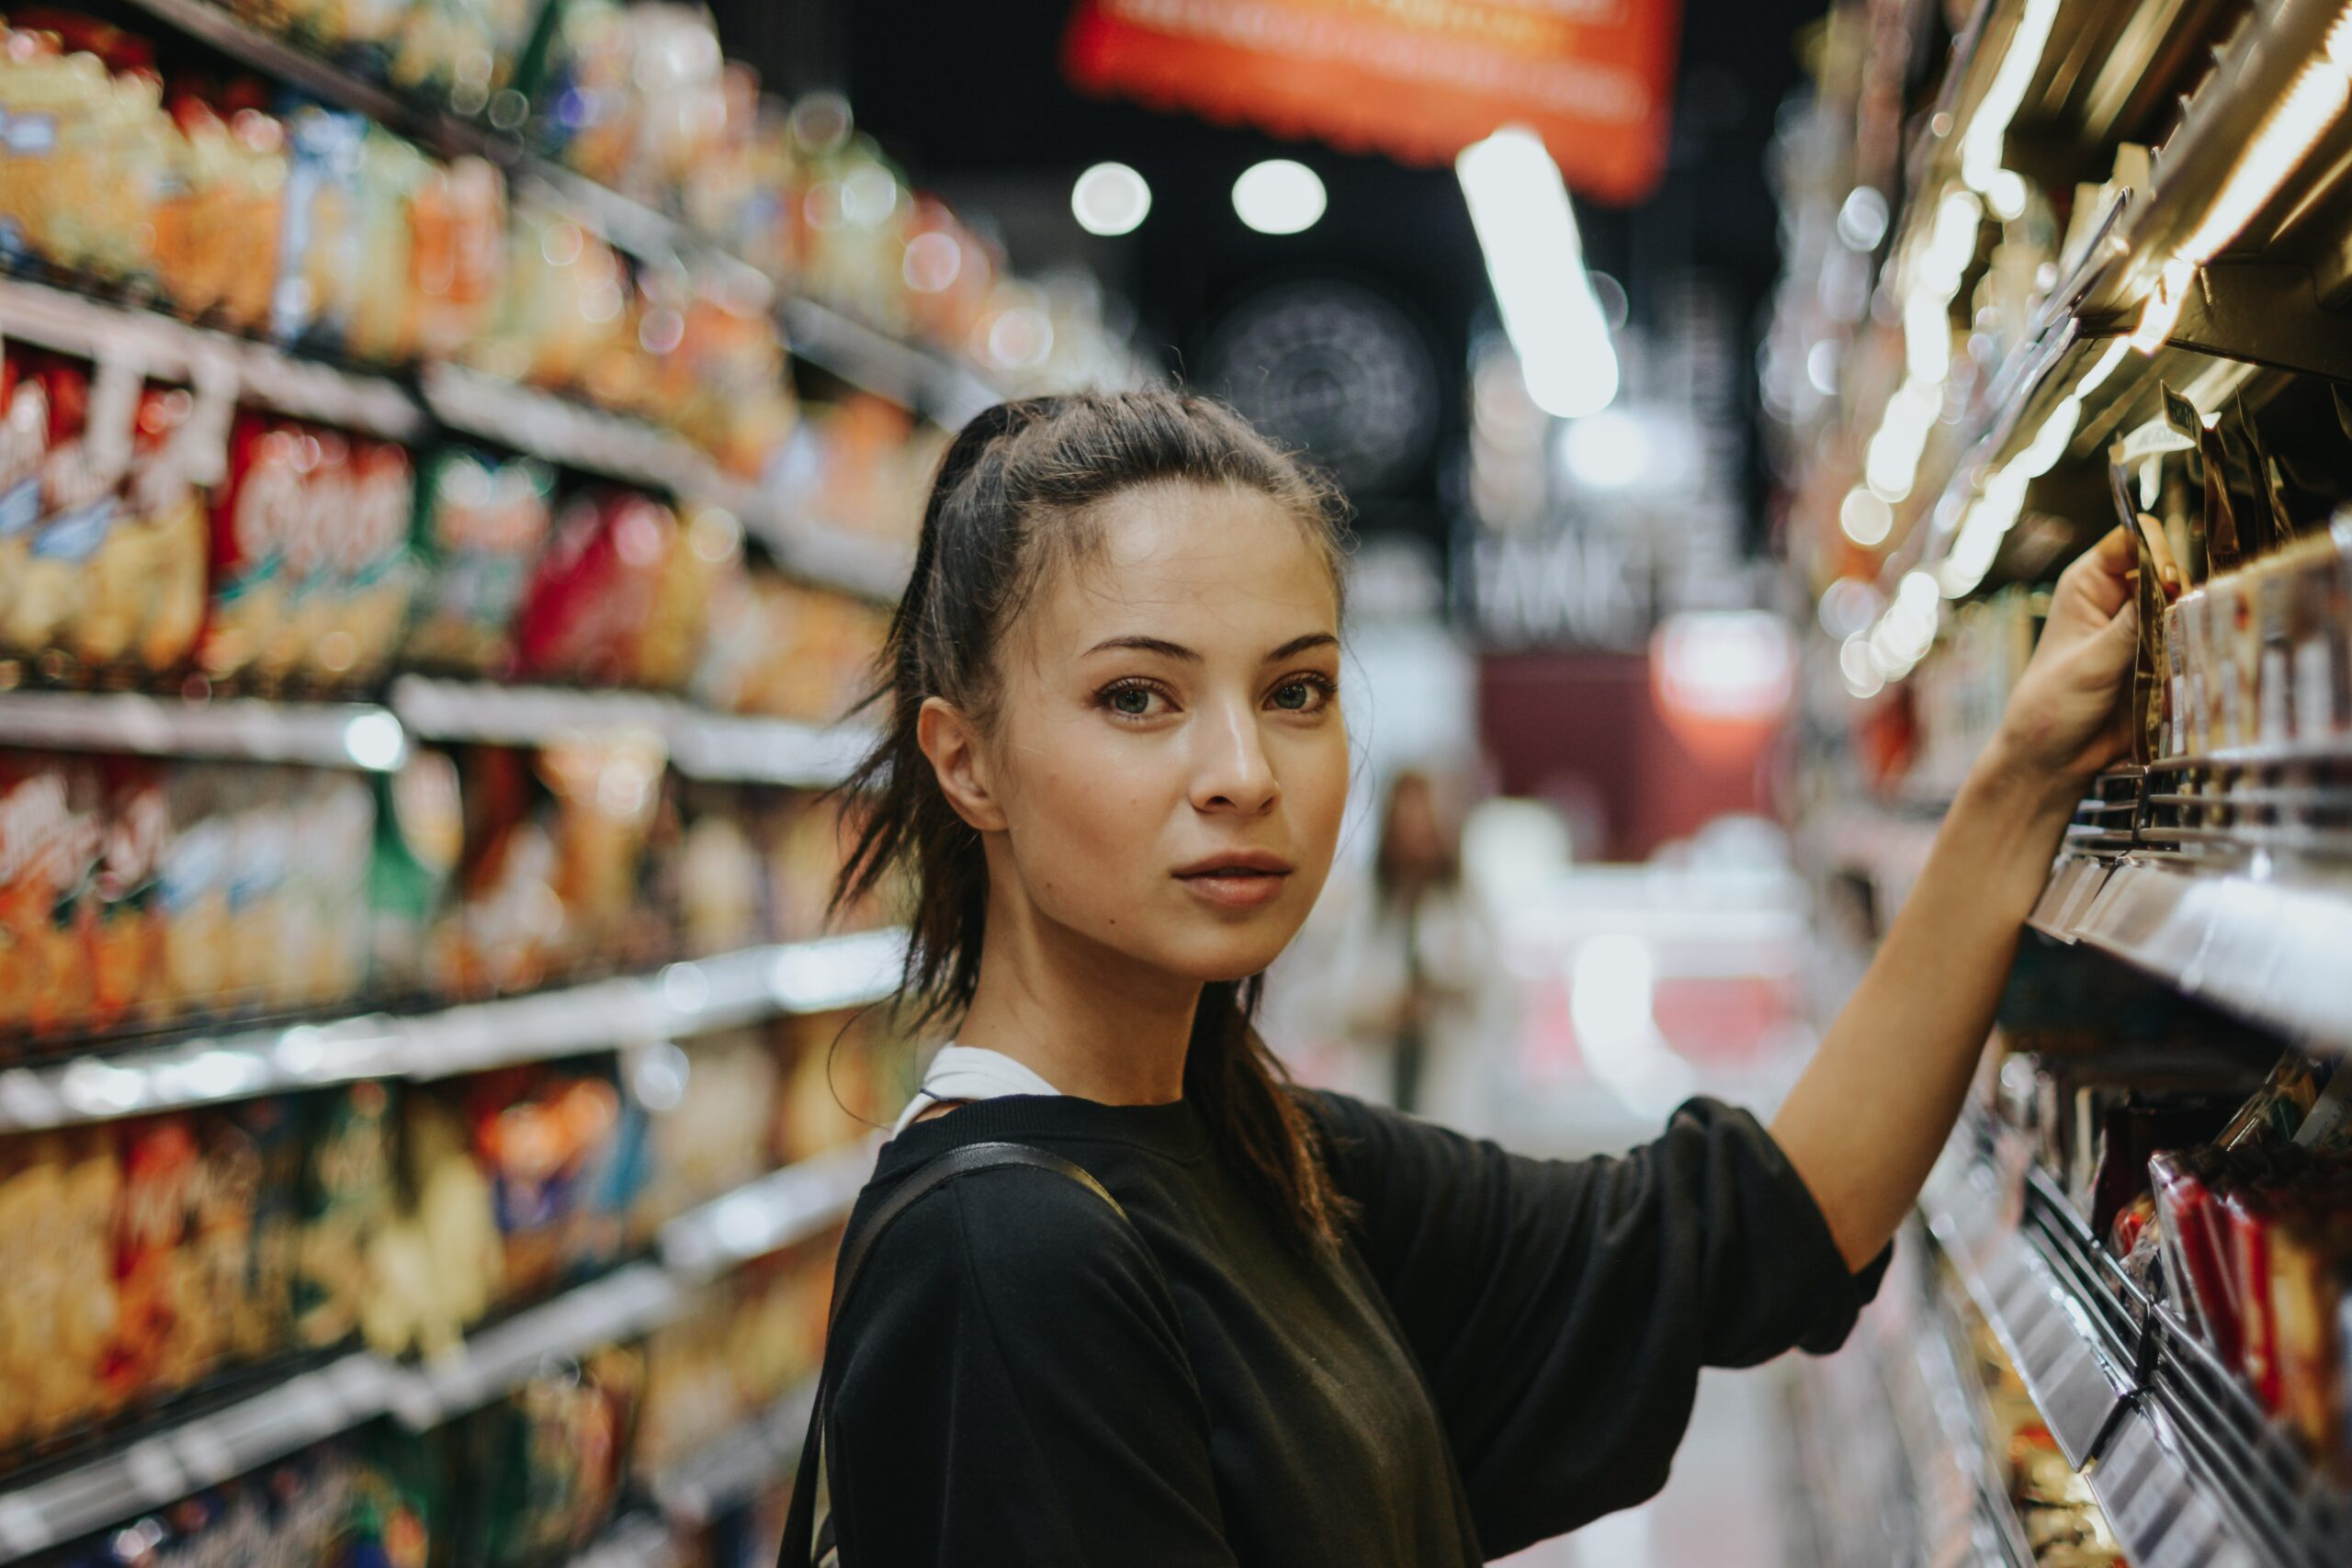 Best 11 Stores for Cheap Groceries in Hong Kong